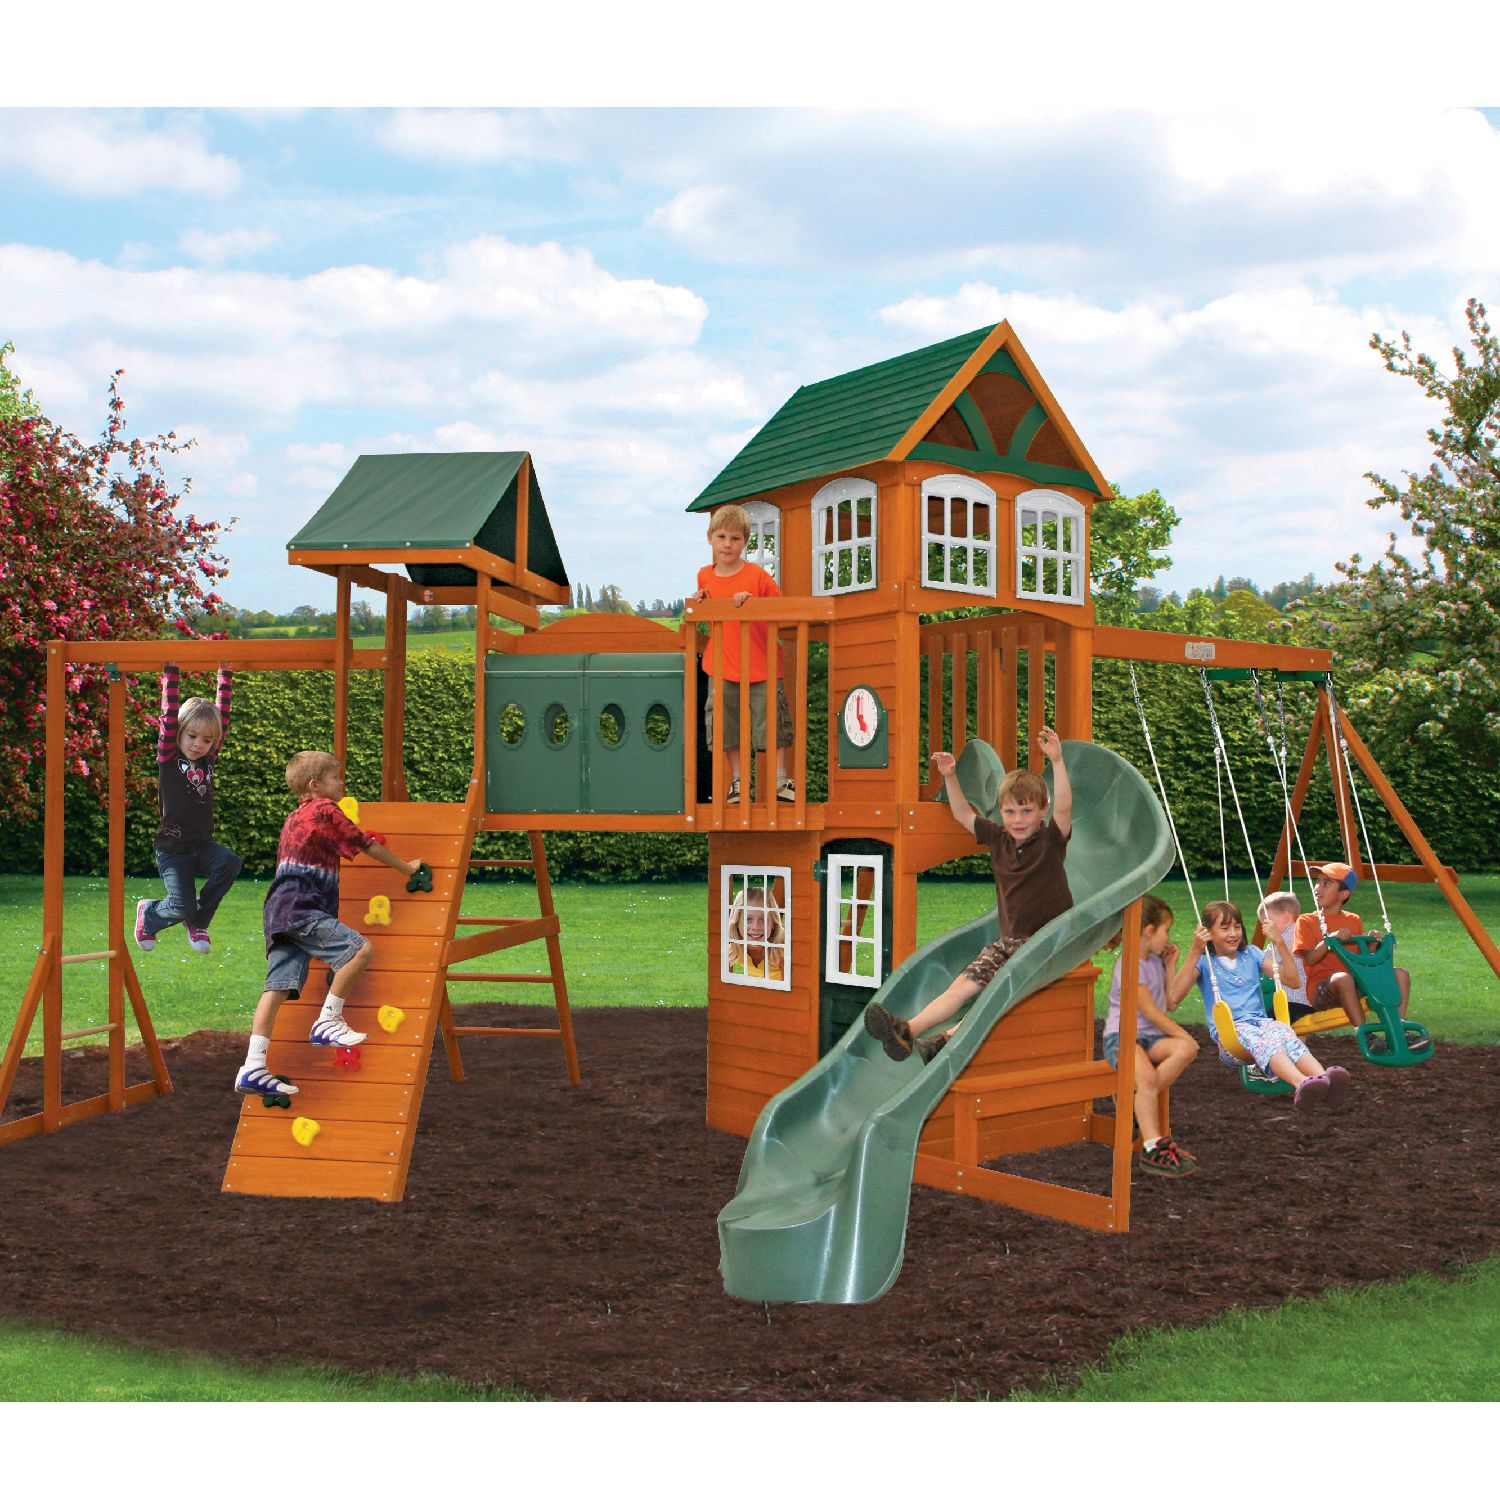 Hillcrest Wooden Play Set By Big Backyard Only 799 00 At Sam S Club